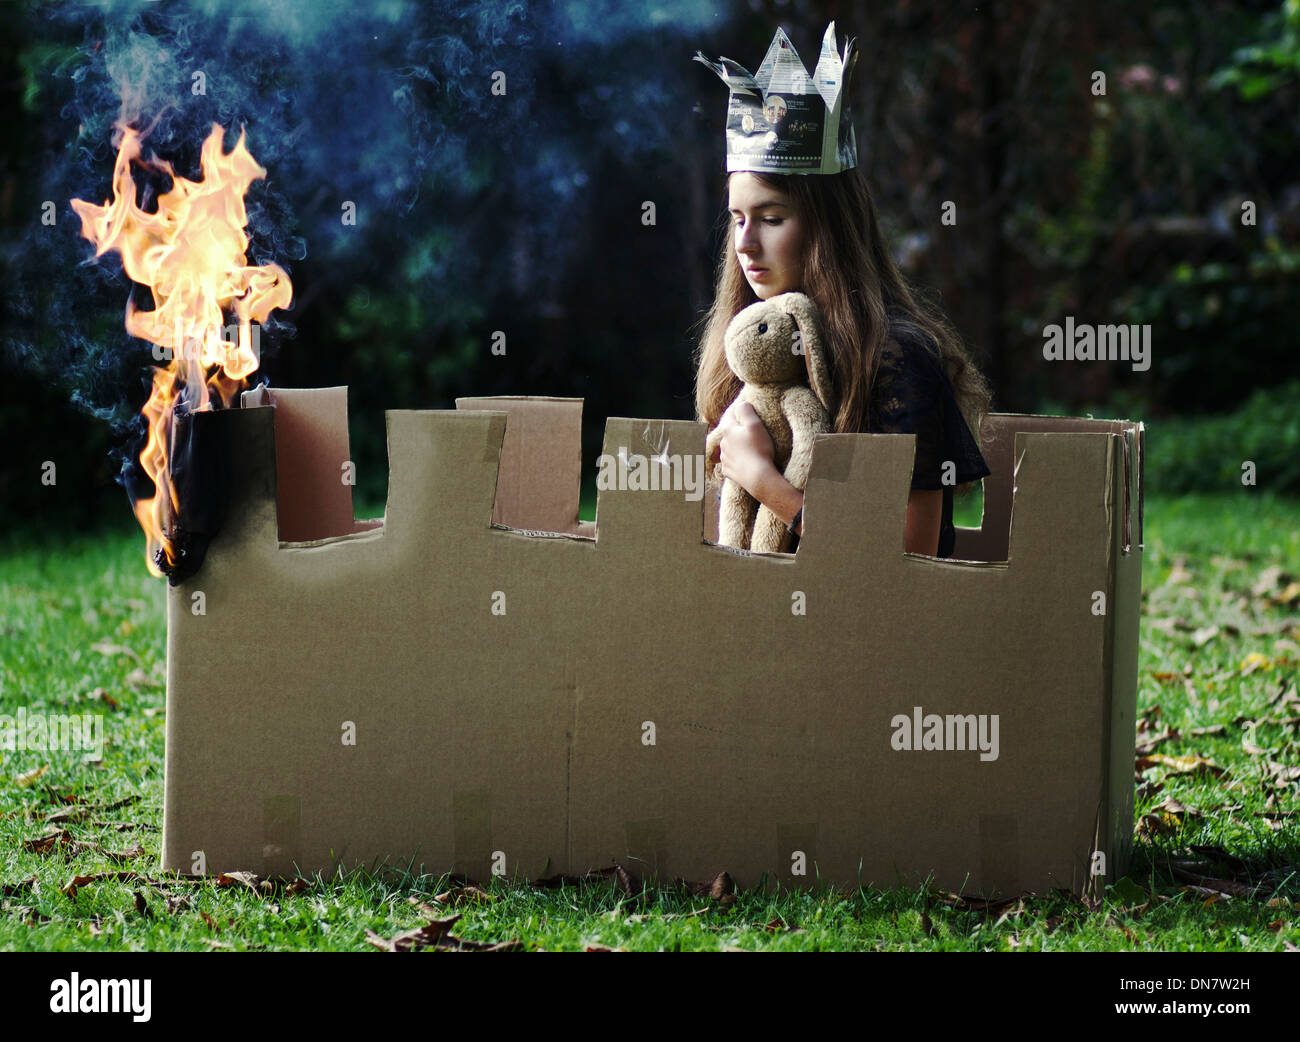 Young girl with plush toy and paper crown sits in a burning castle made of cardboard - Stock Image